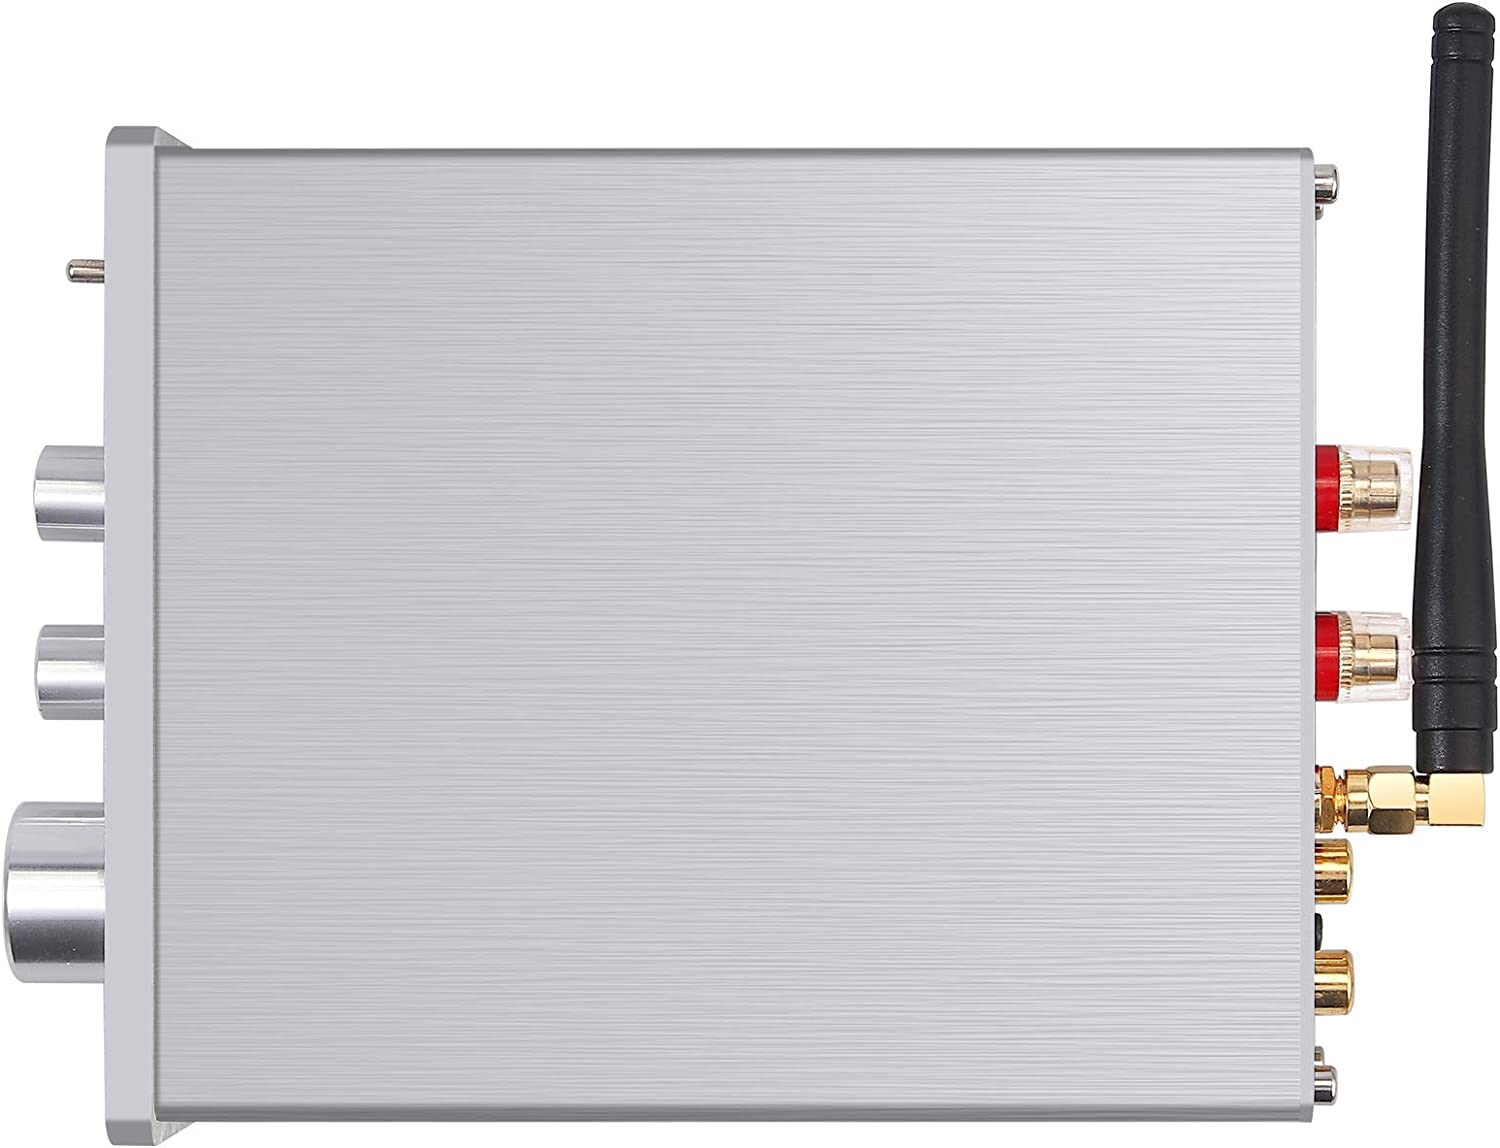 Neoteck Bluetooth Stereo Audio 2 Channel Amplifier Receiver for Home Bookshelf Speakers, Mini Hi-Fi Class D Integrated Amp 2.0CH 100W x 2 with Bass Treble Control TPA3116D2, Brushed Aluminum Fashion